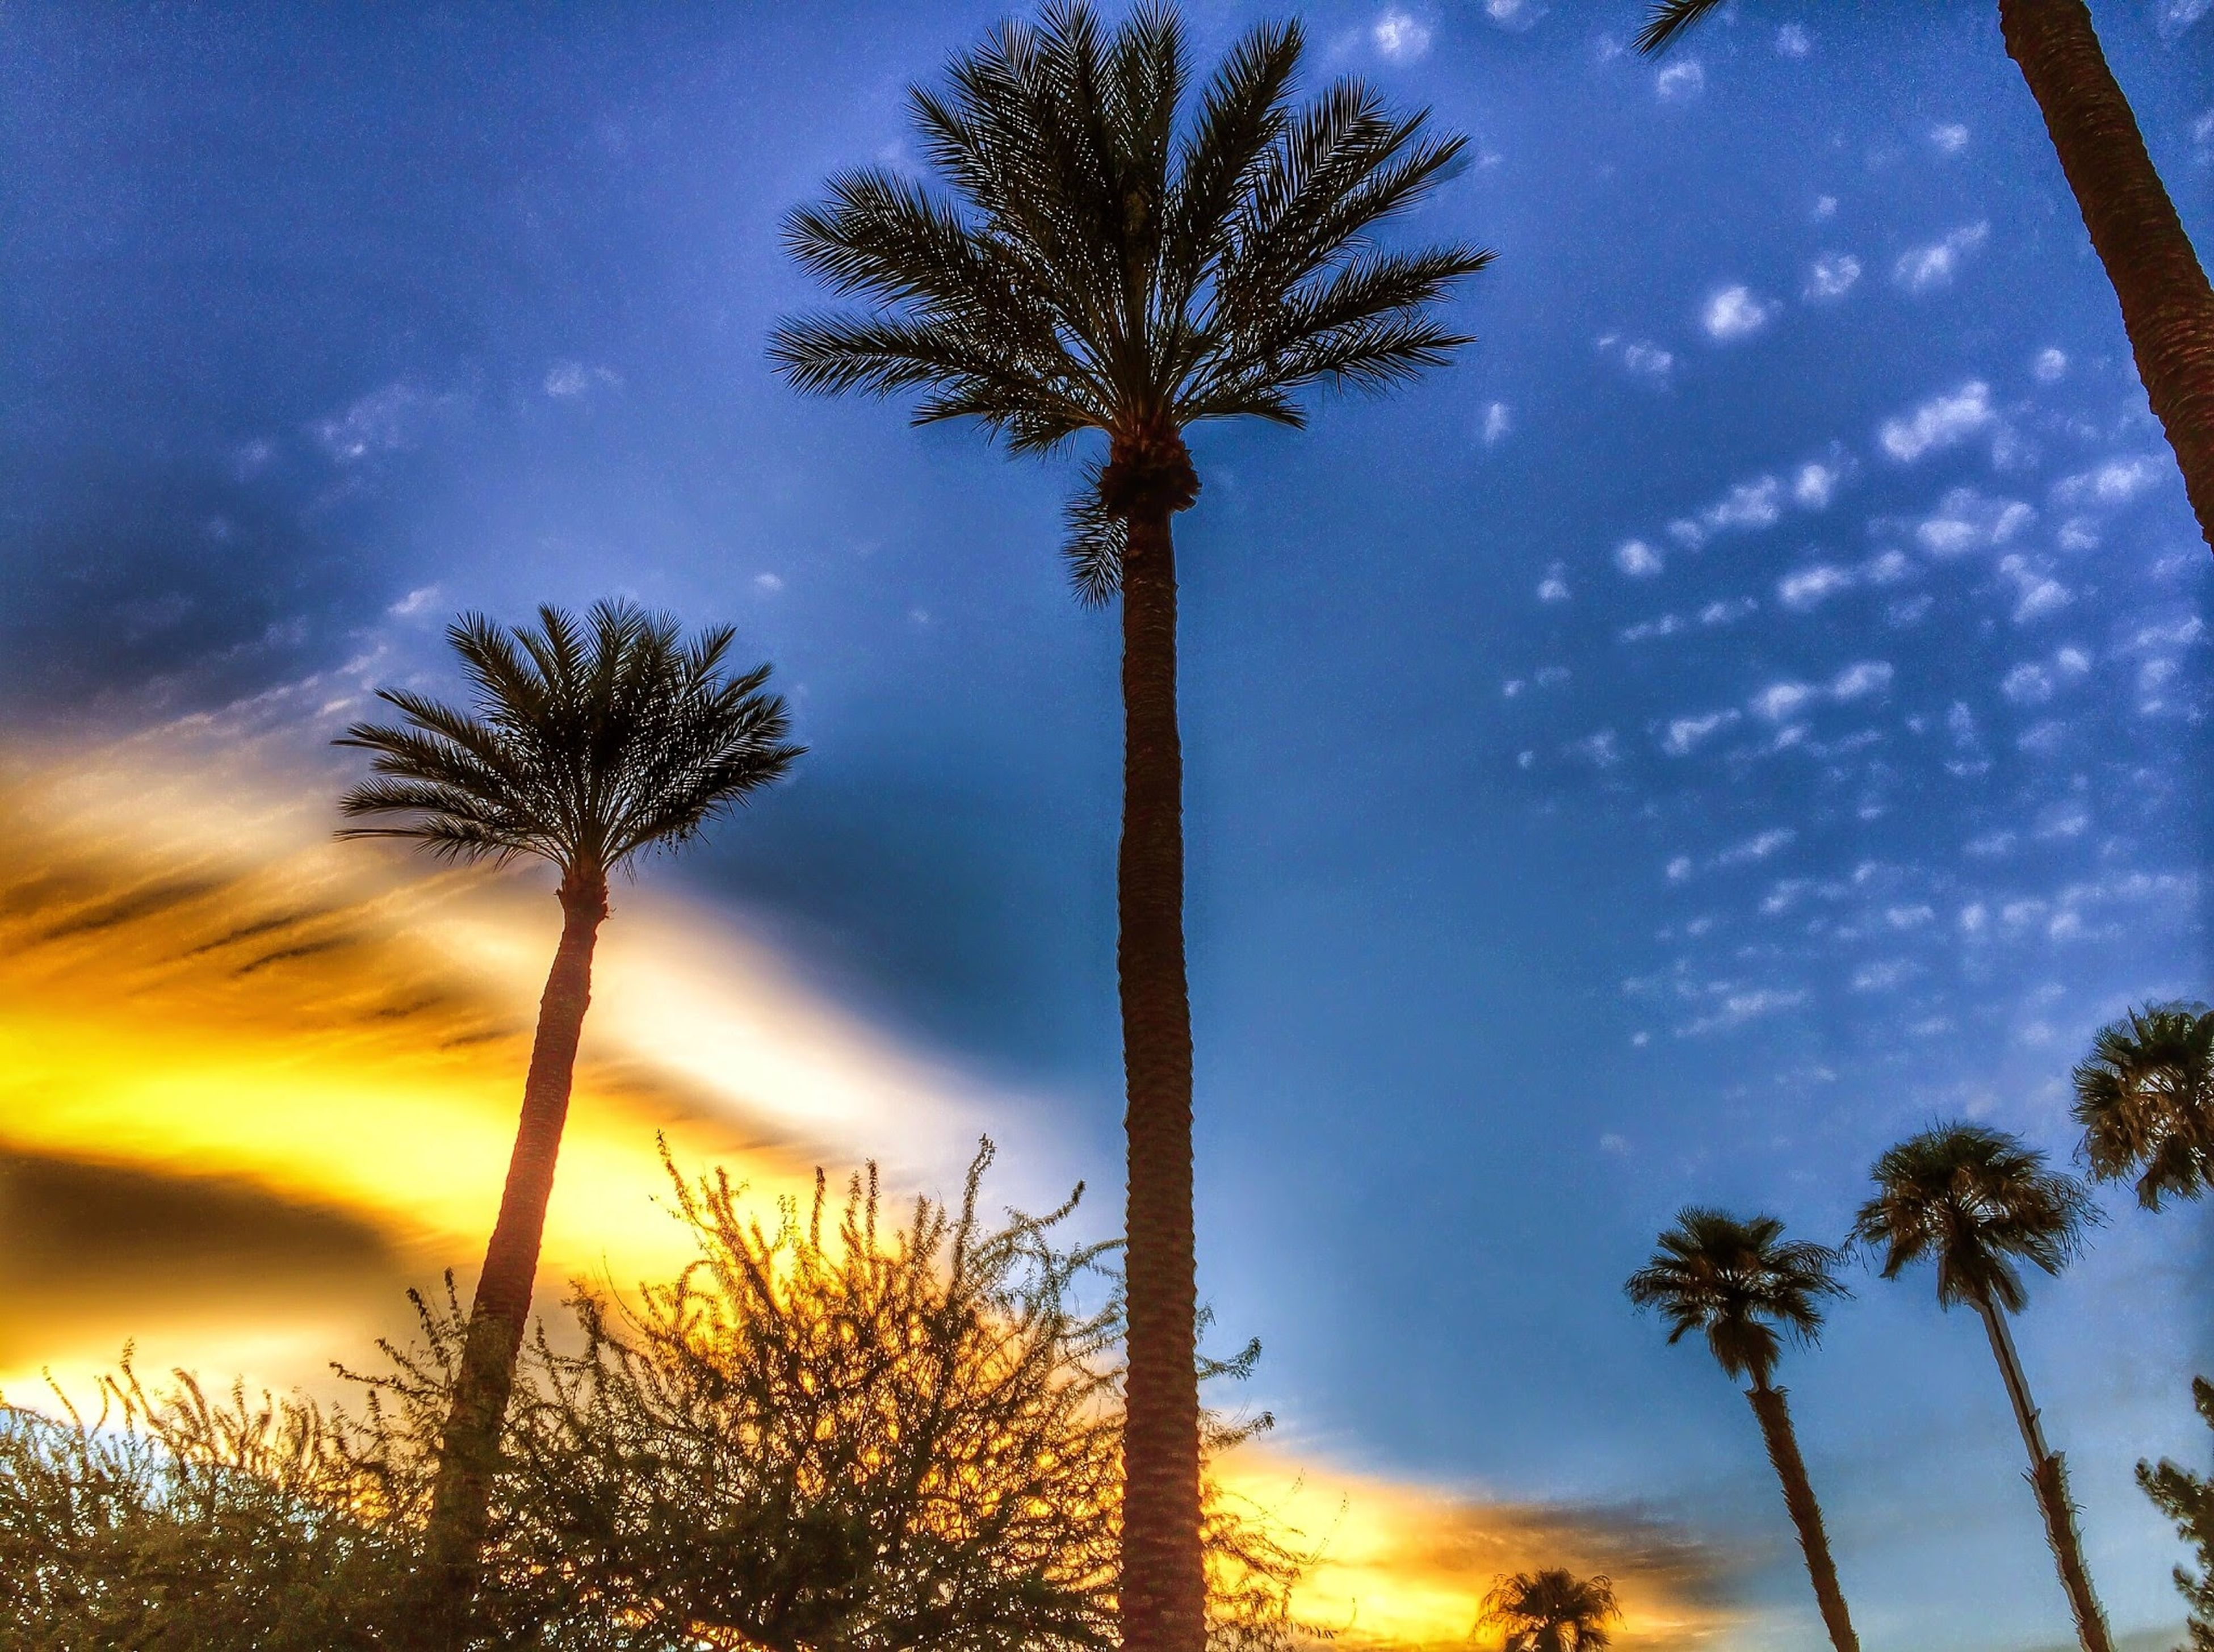 low angle view, sky, tree, silhouette, growth, palm tree, beauty in nature, nature, tranquility, cloud - sky, sunset, tree trunk, scenics, cloud, tranquil scene, branch, outdoors, no people, blue, tall - high